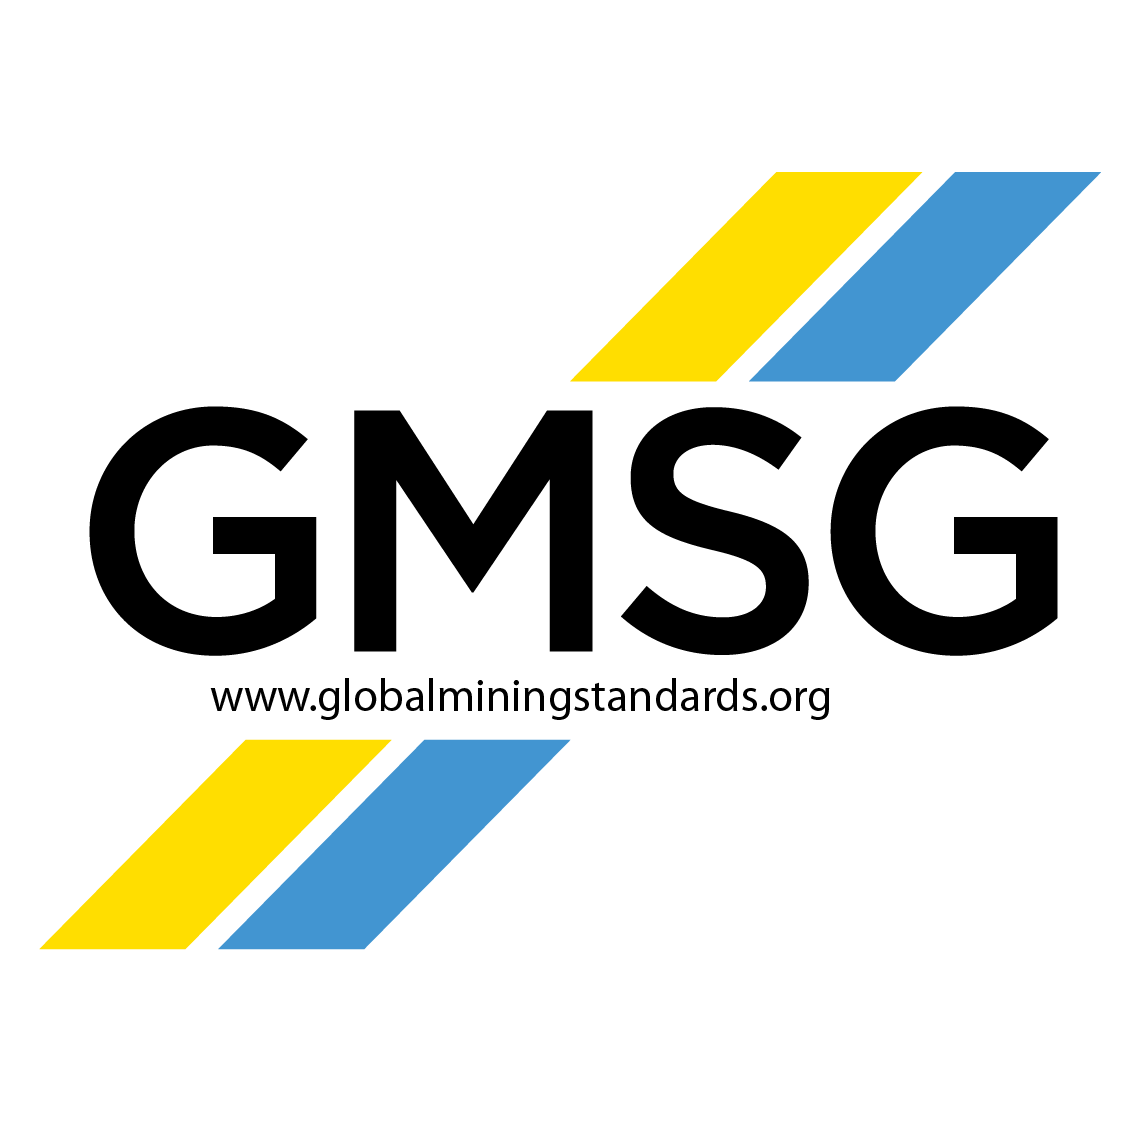 Global Mining Standards Group